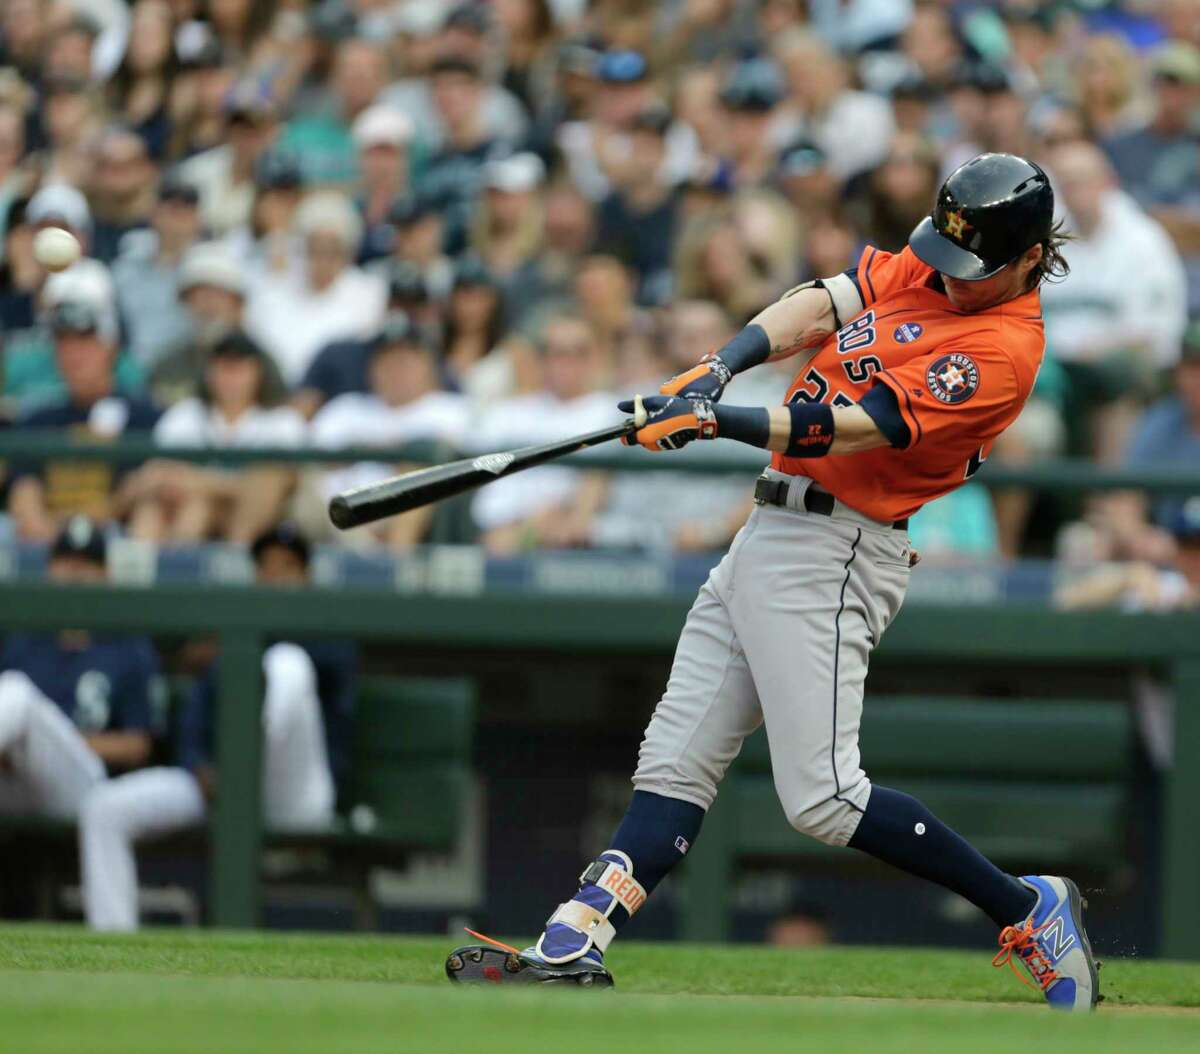 Houston Astros' Josh Reddick hits a two-run single against the Seattle Mariners during the seventh inning of a baseball game, Monday, Sept. 4, 2017, in Seattle. (AP Photo/John Froschauer)